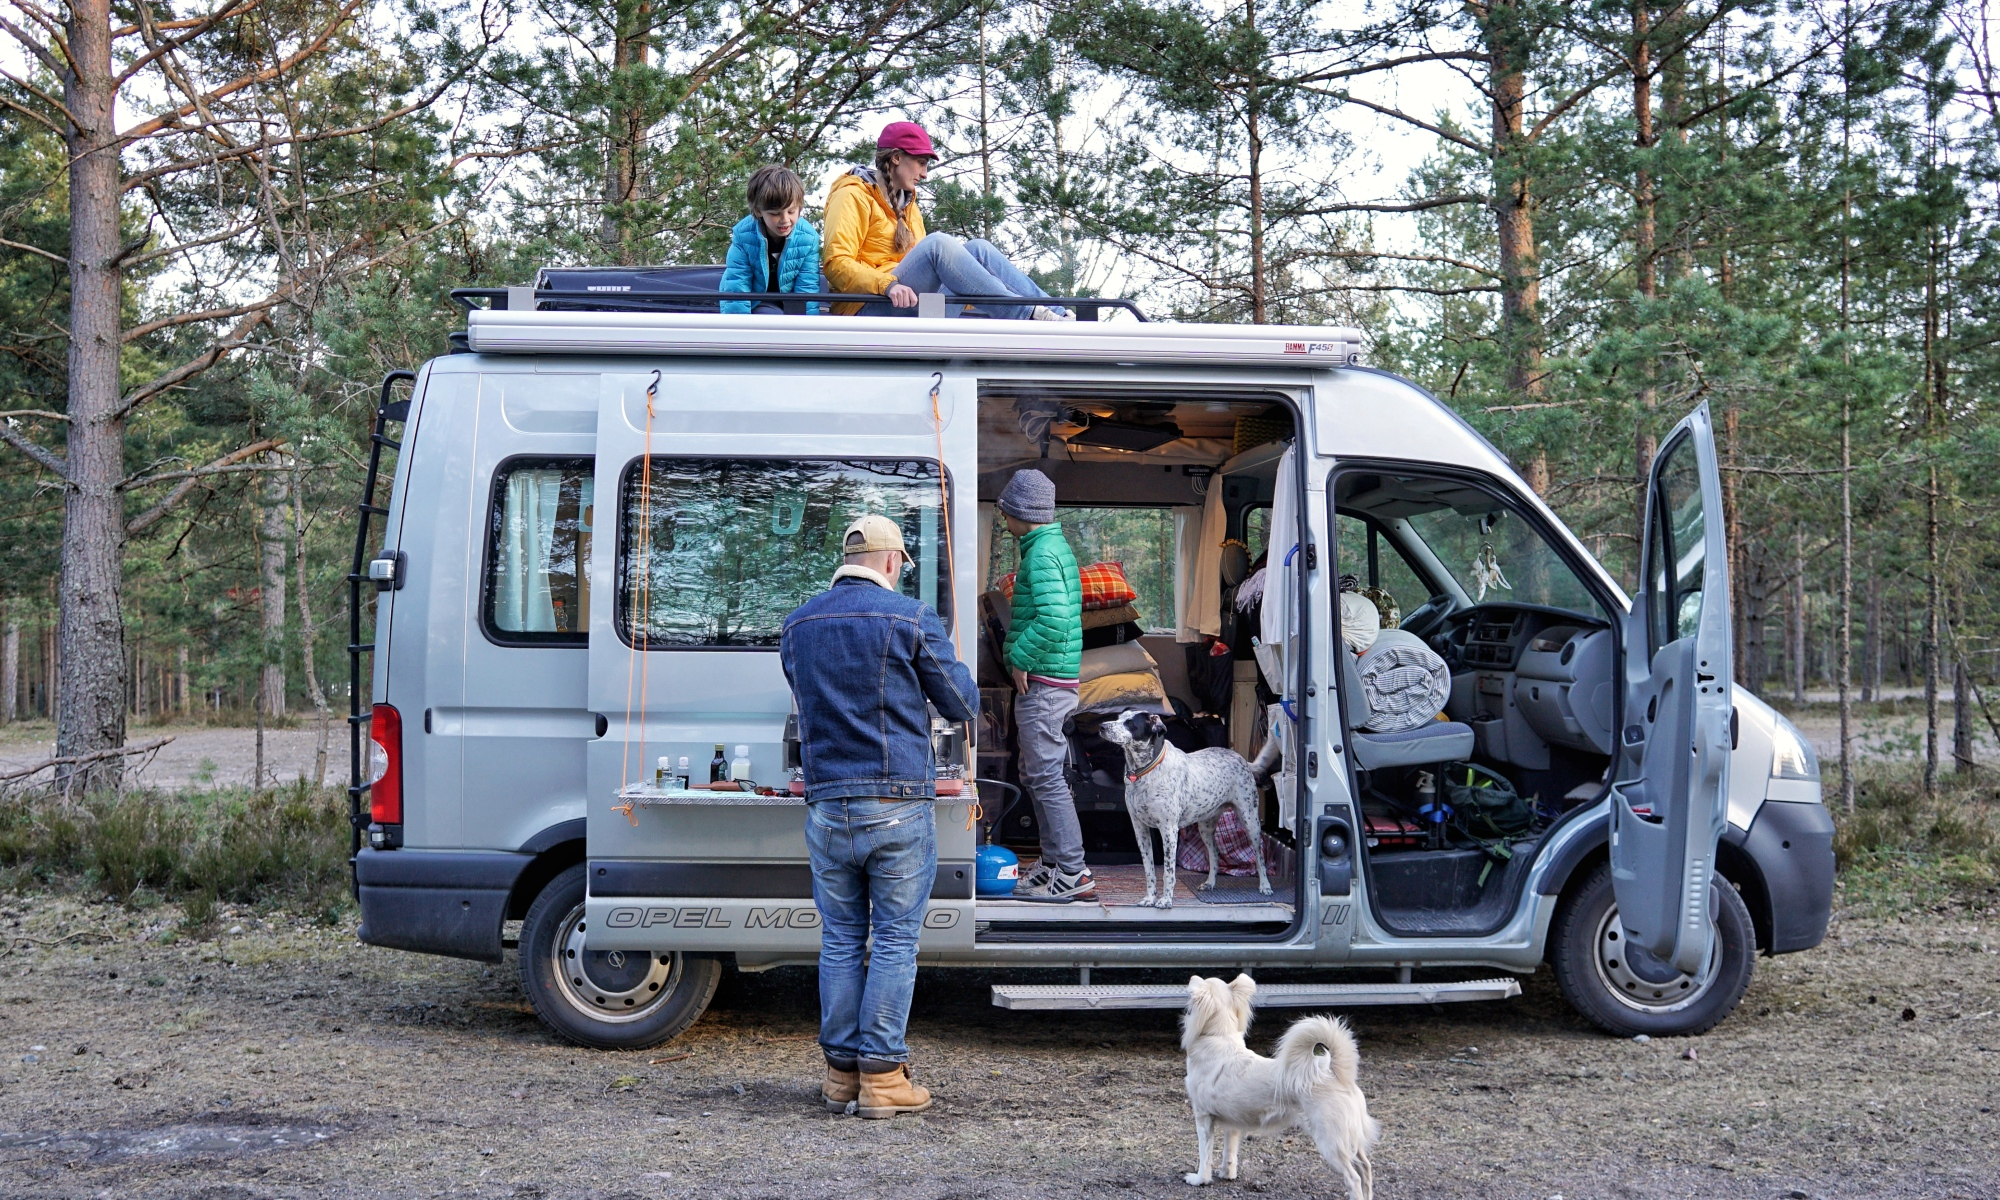 Swedish Vanlife O Weekend Warrior Family W Kids Dogs Dreams About Simple Living A Life On The Road Ingaro SWEDEN